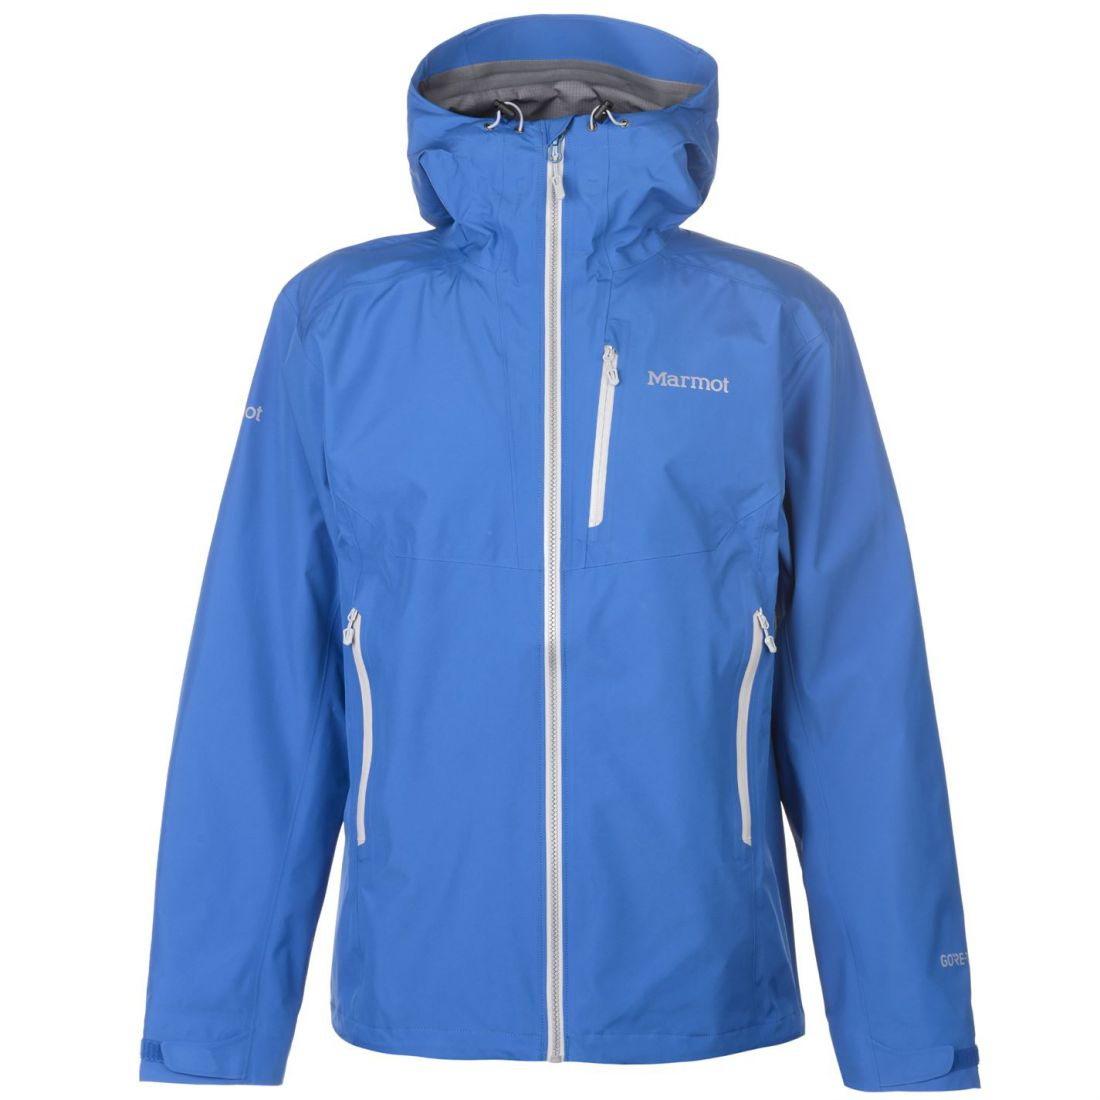 9654cd9a848 Marmot Speed Light 3L Jacket Ladies Water Repellent Coat Top ...